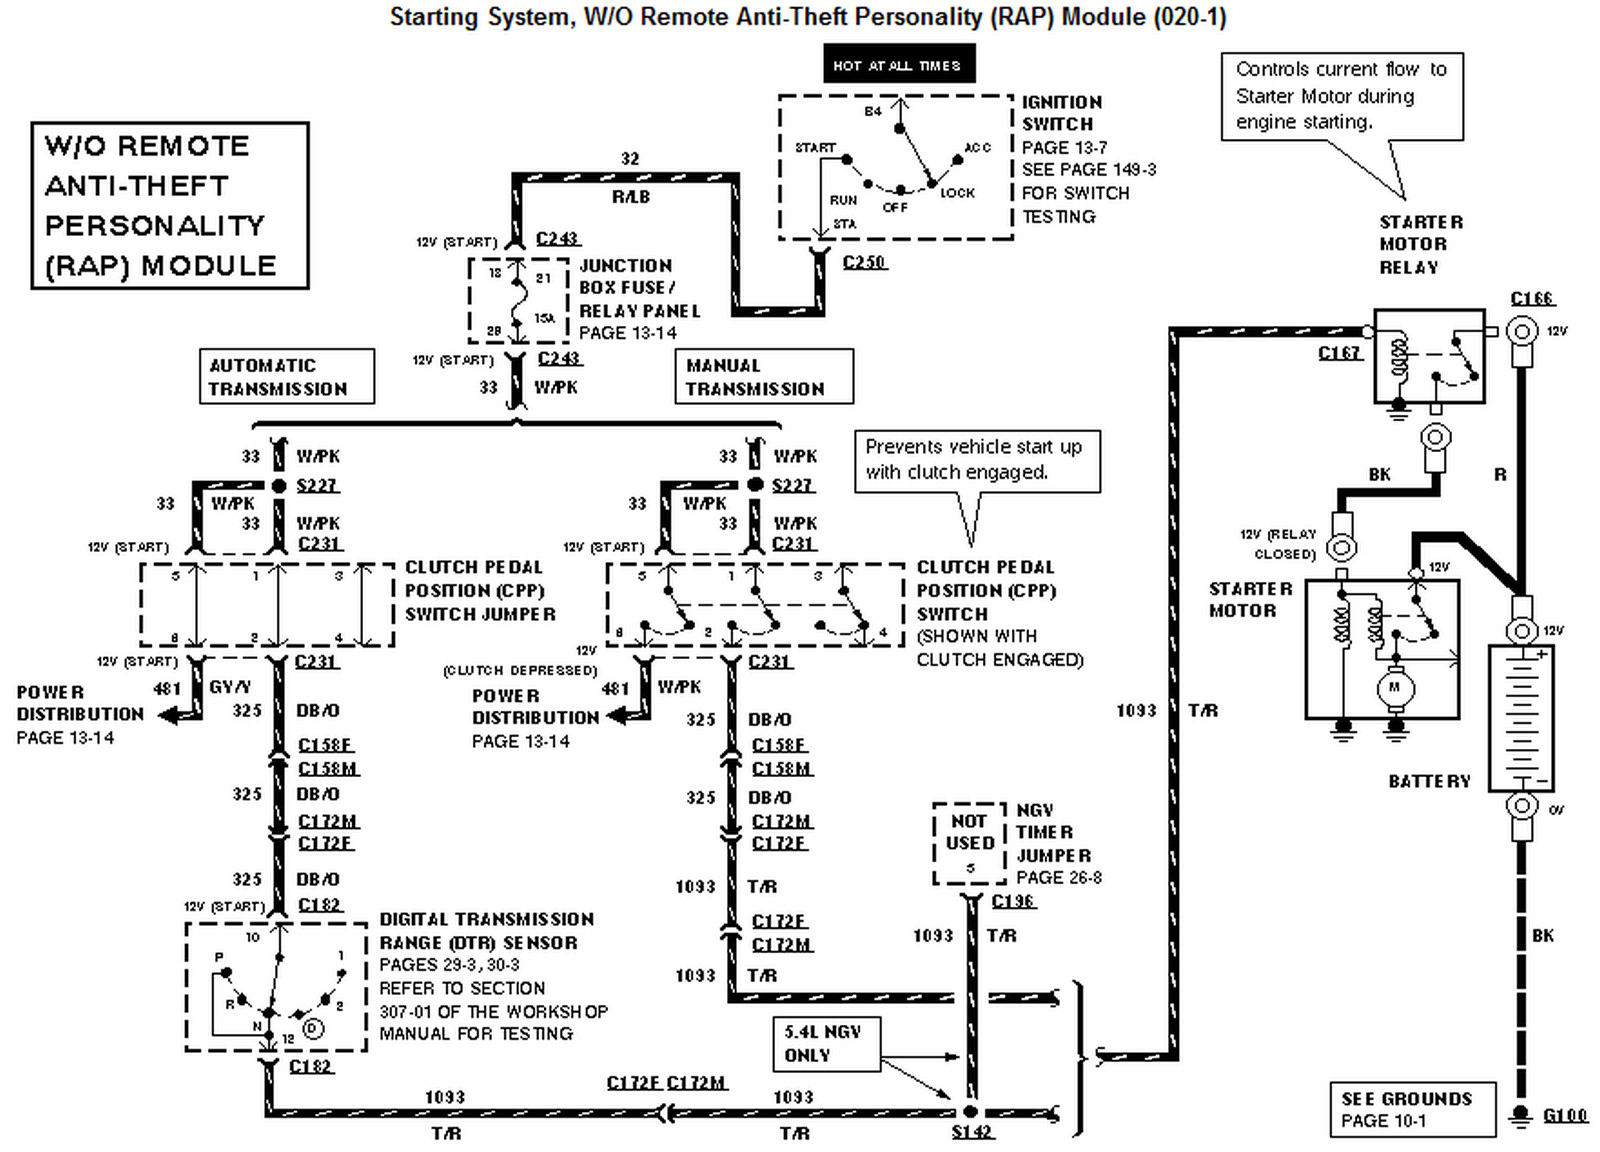 2010 03 26_003202_98_F 150_IGNITION_SWITCH_WIRING_DIAGRAM stratos wiring diagrams readingrat net tracker wiring diagram at edmiracle.co